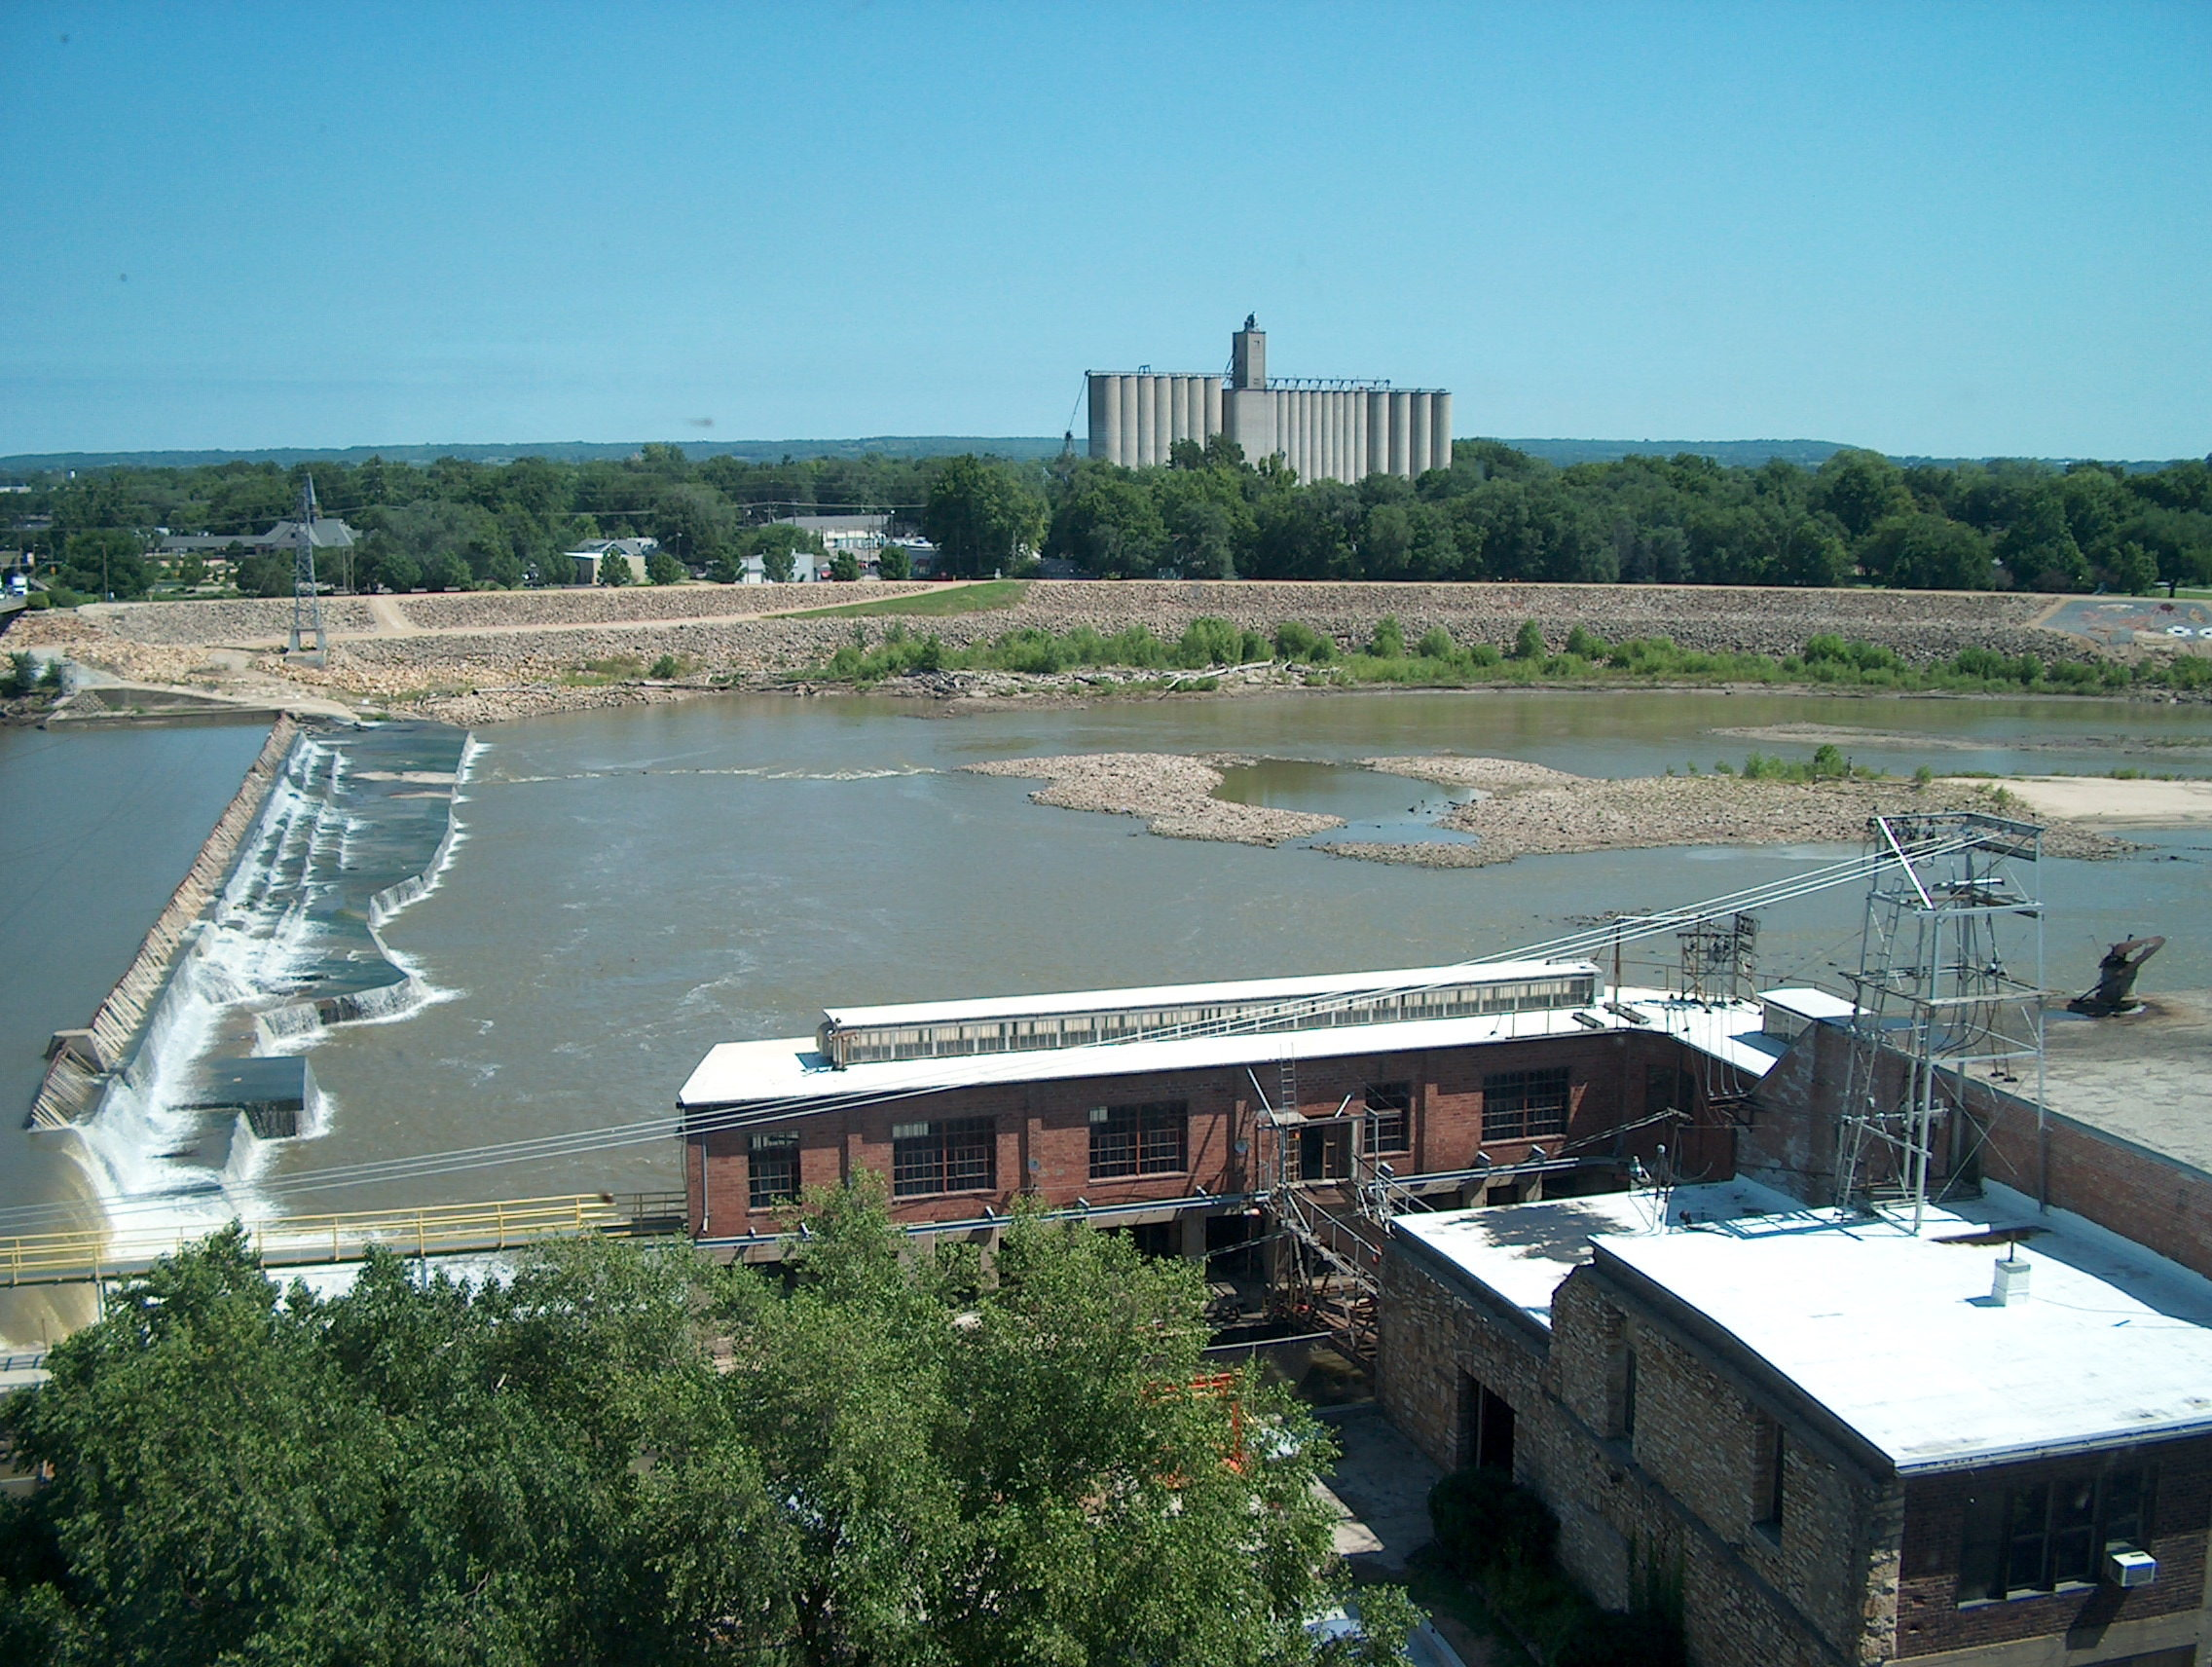 [Kaw (Kansas) River from City Hall fourth floor.]